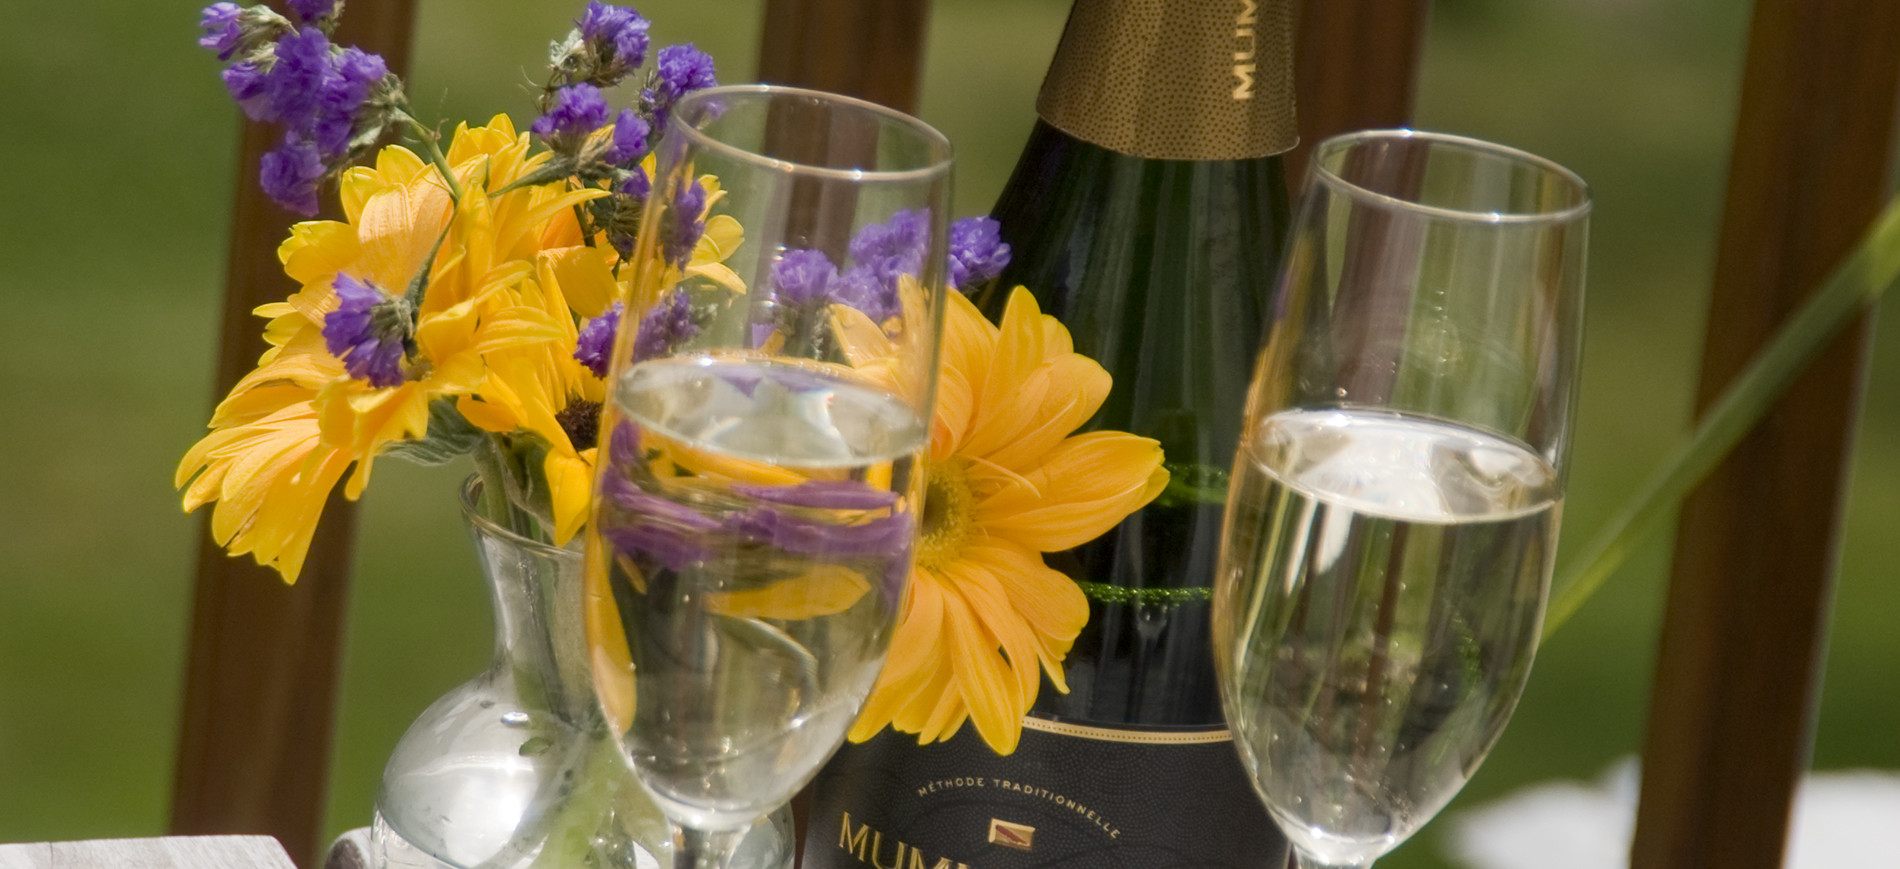 champagne glasses in front of vase of yellow and purple flowers and champagne bottle